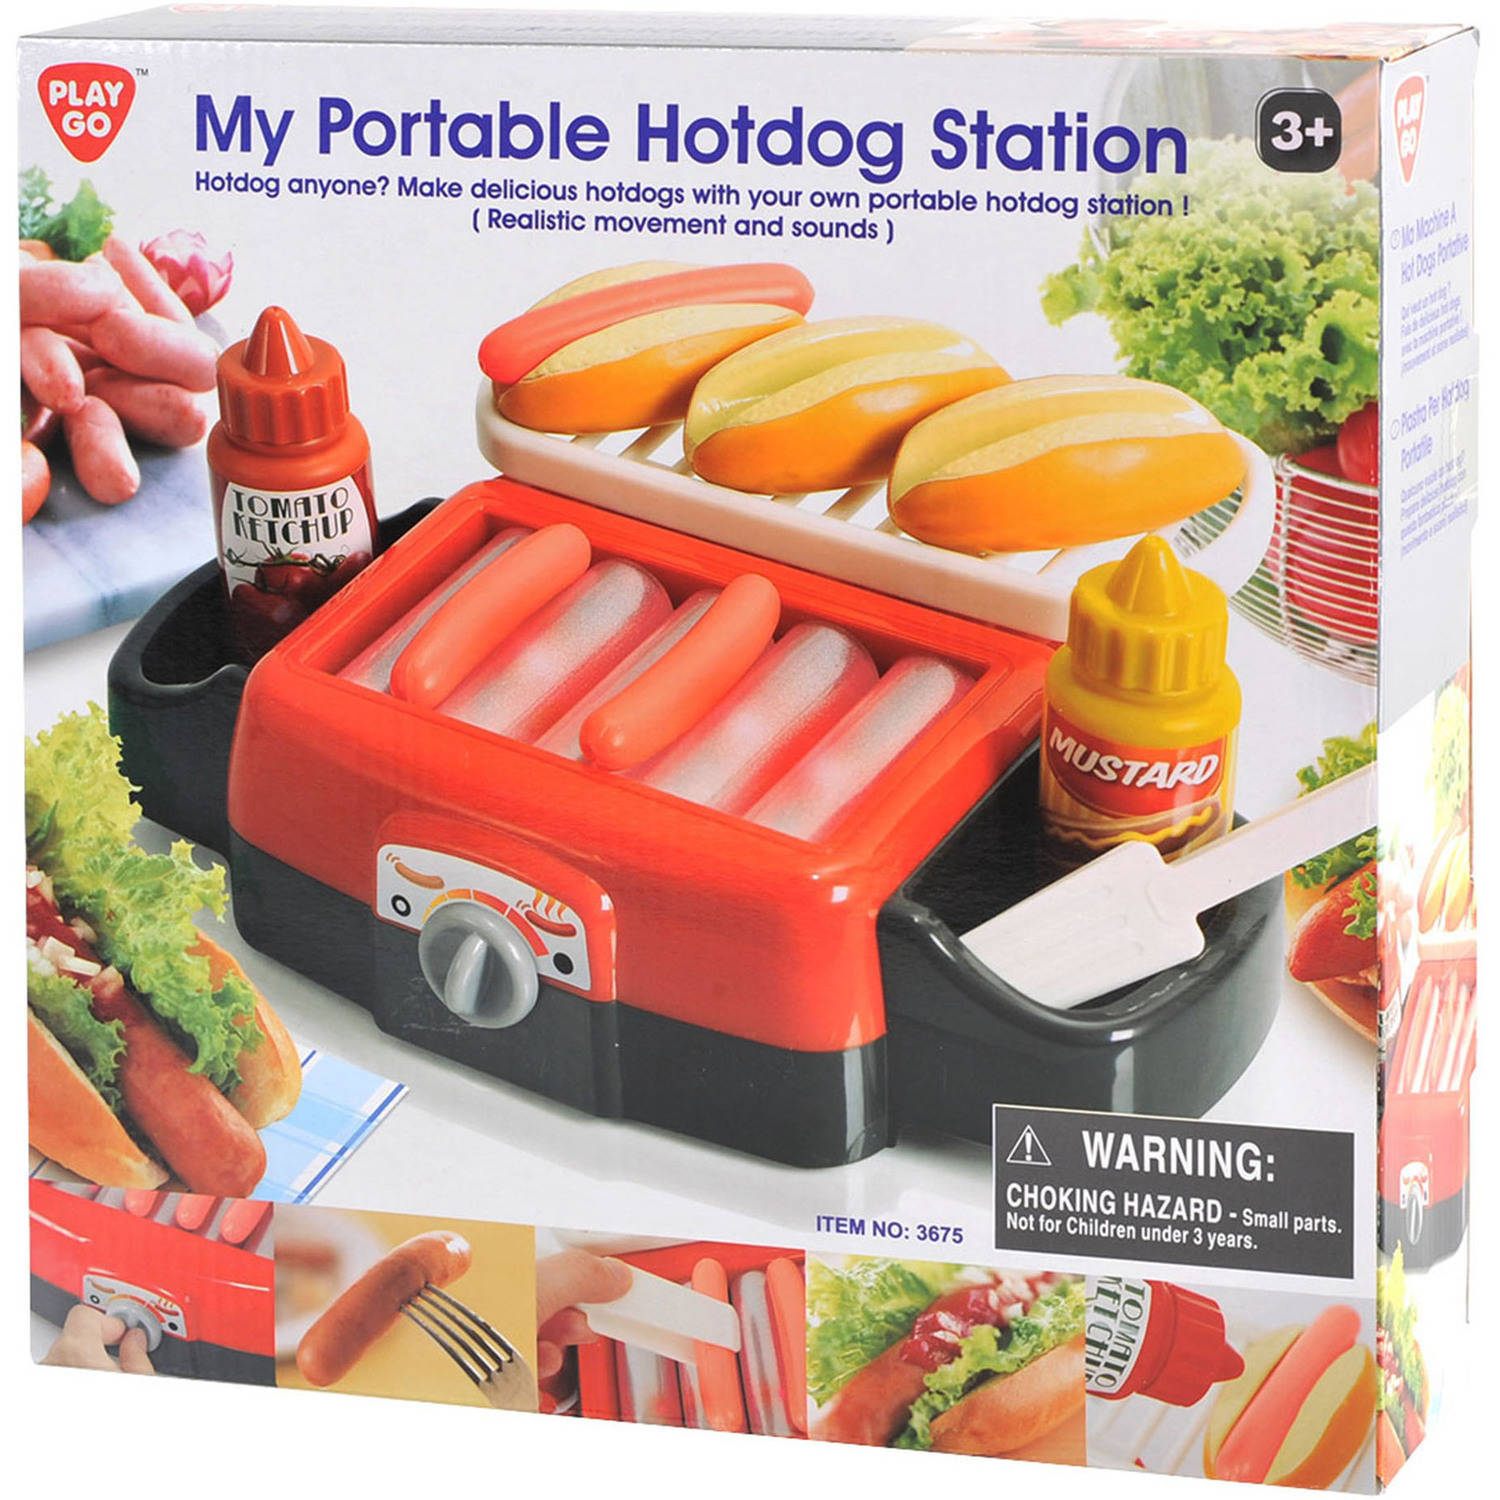 Portable Hotdog Station